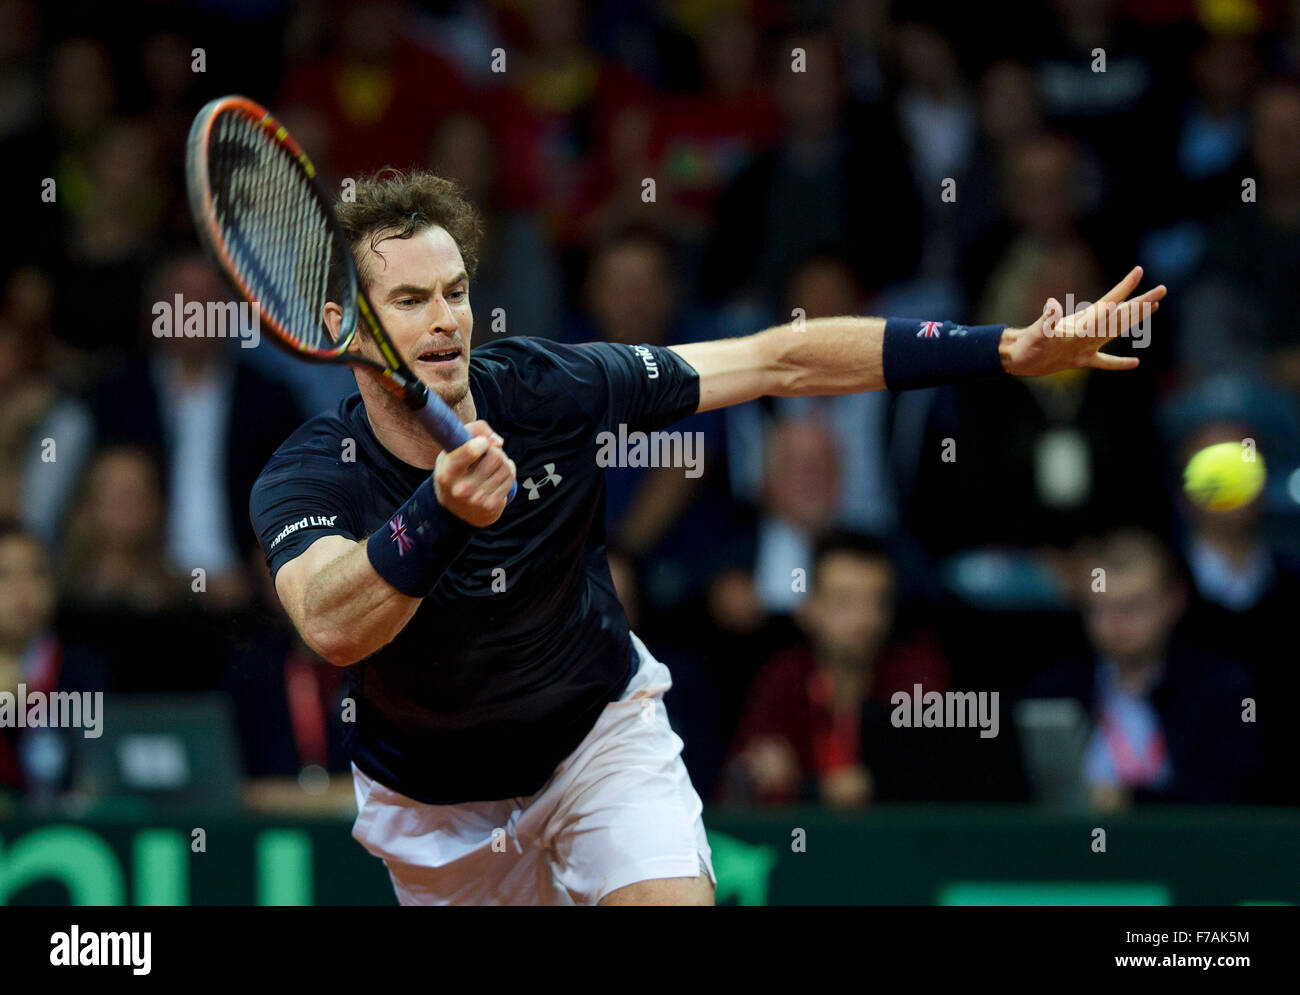 Gent, Belgium, November 27, 2015, Davis Cup Final, Belgium-Great Britain, Second match, Andy Murray (GBR)  Credit: - Stock Image